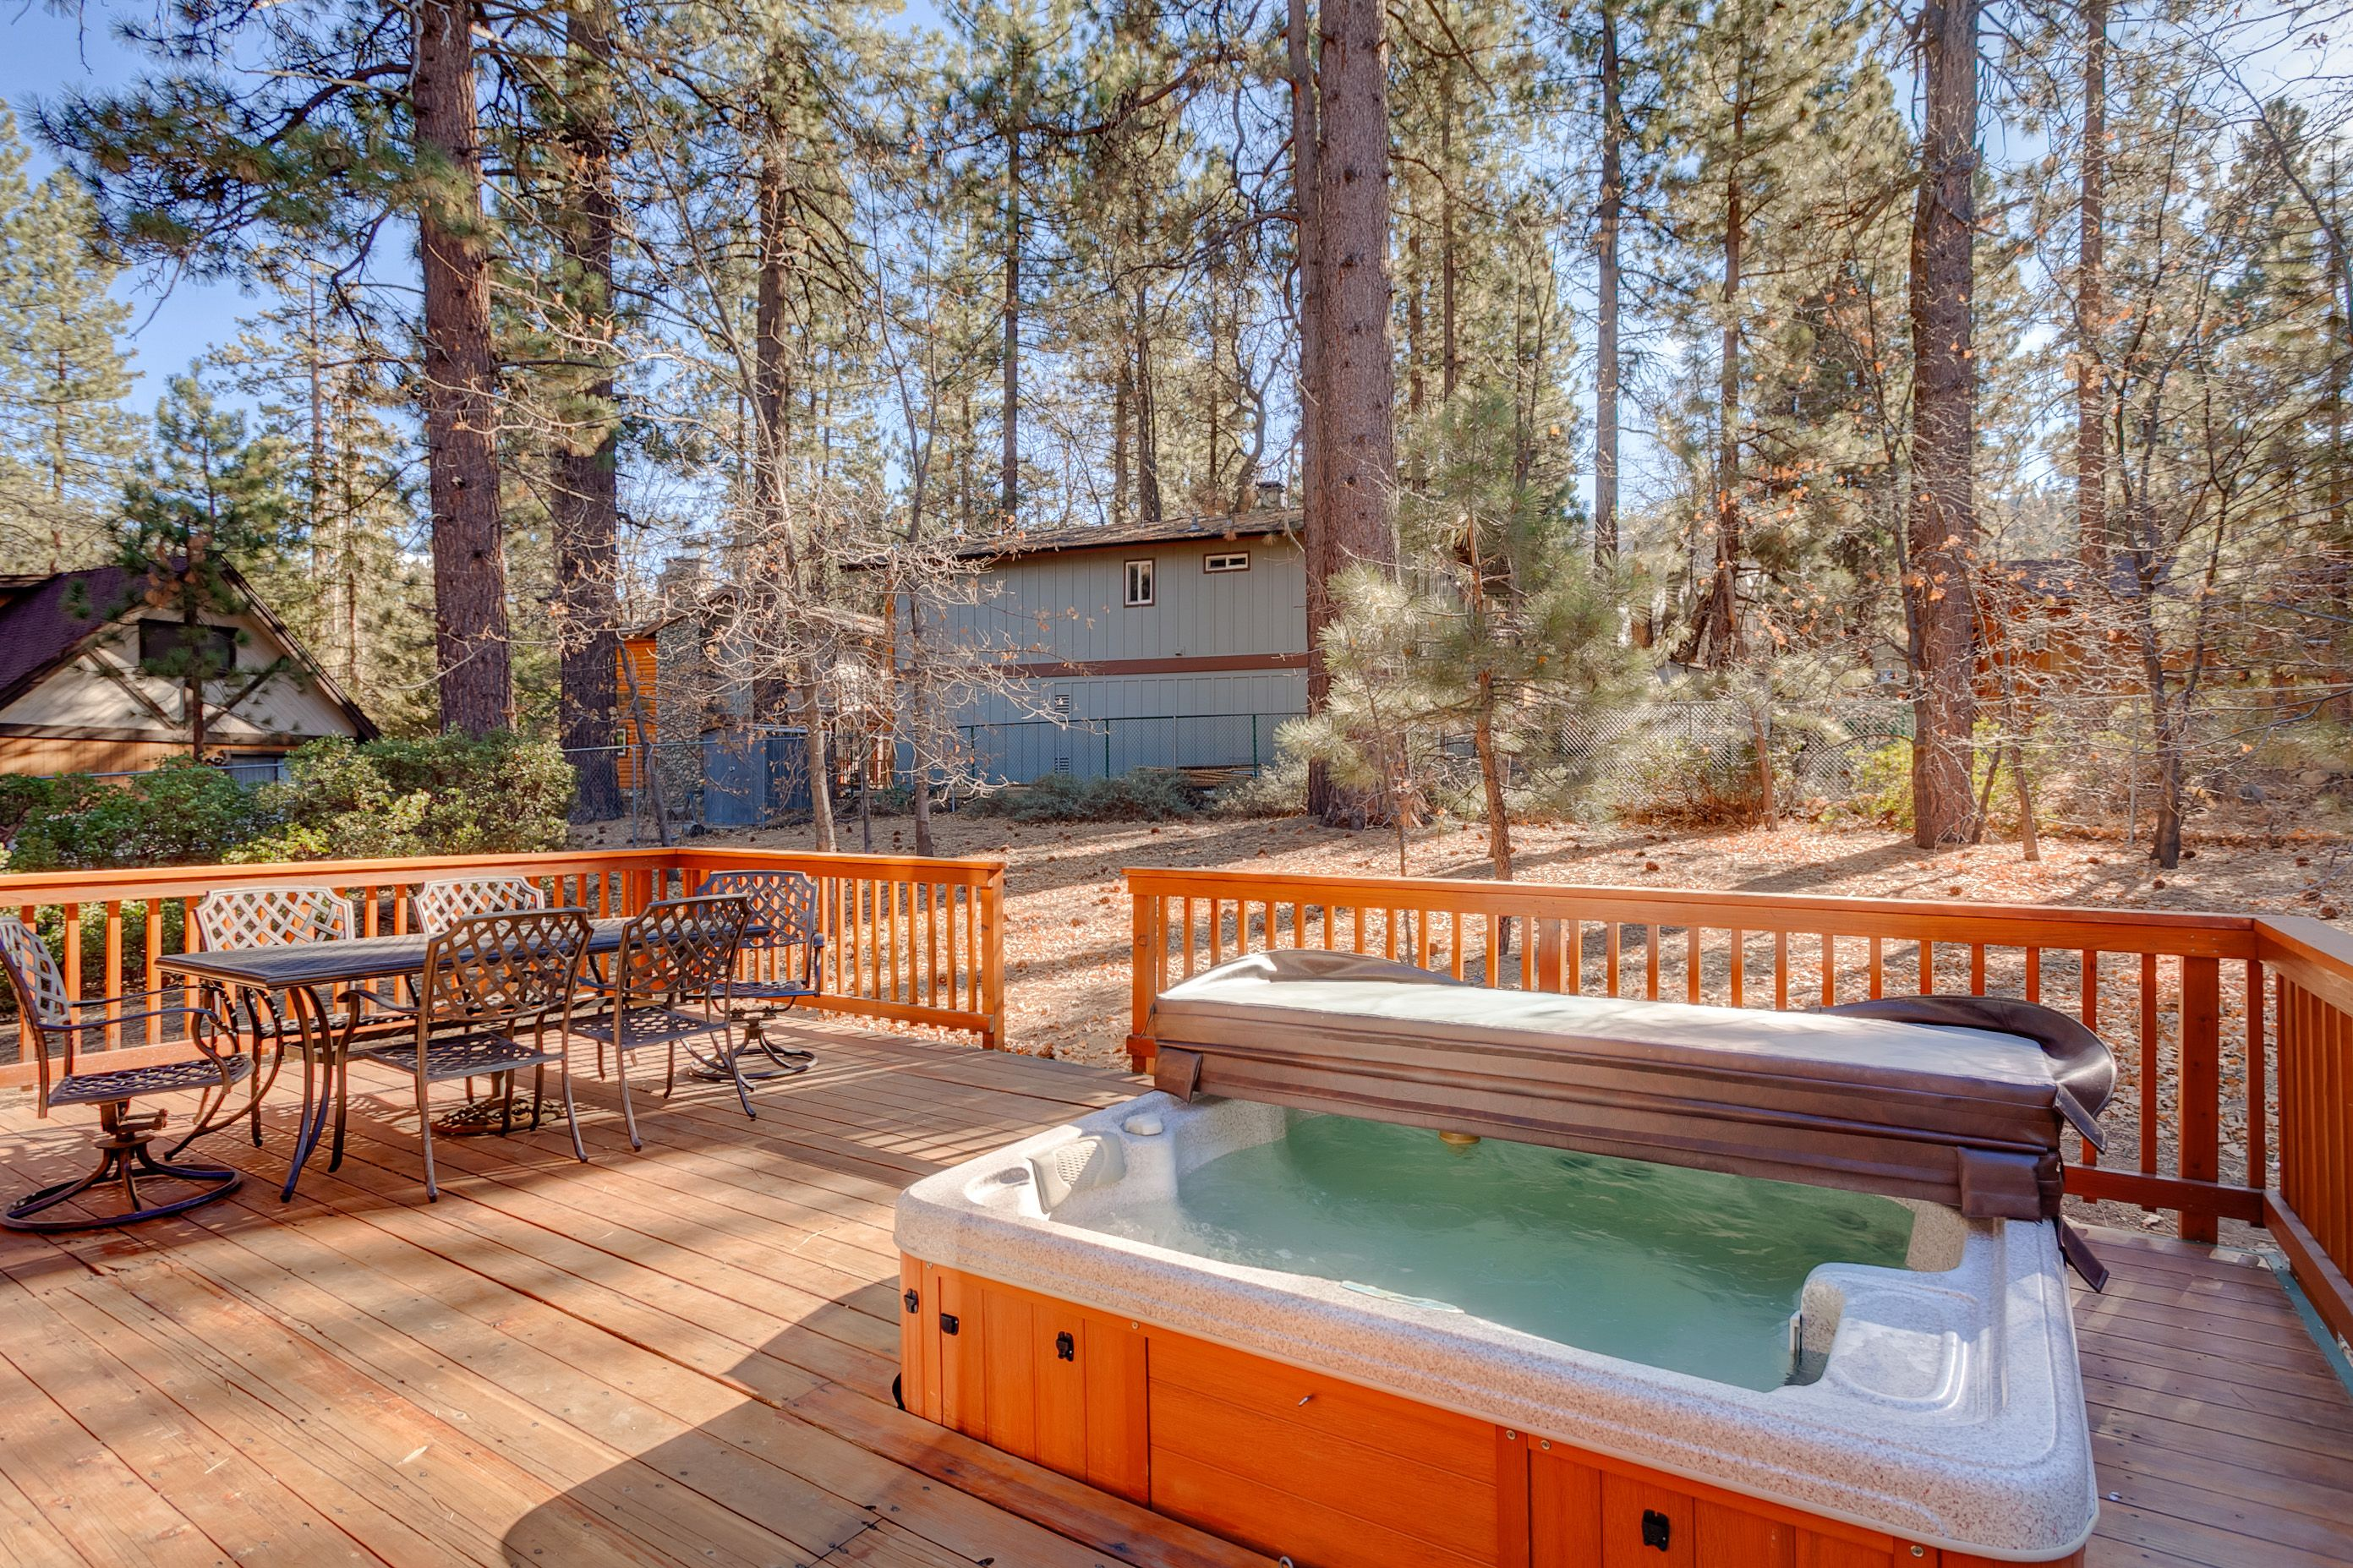 Private 6 person hot tub for spending quality time